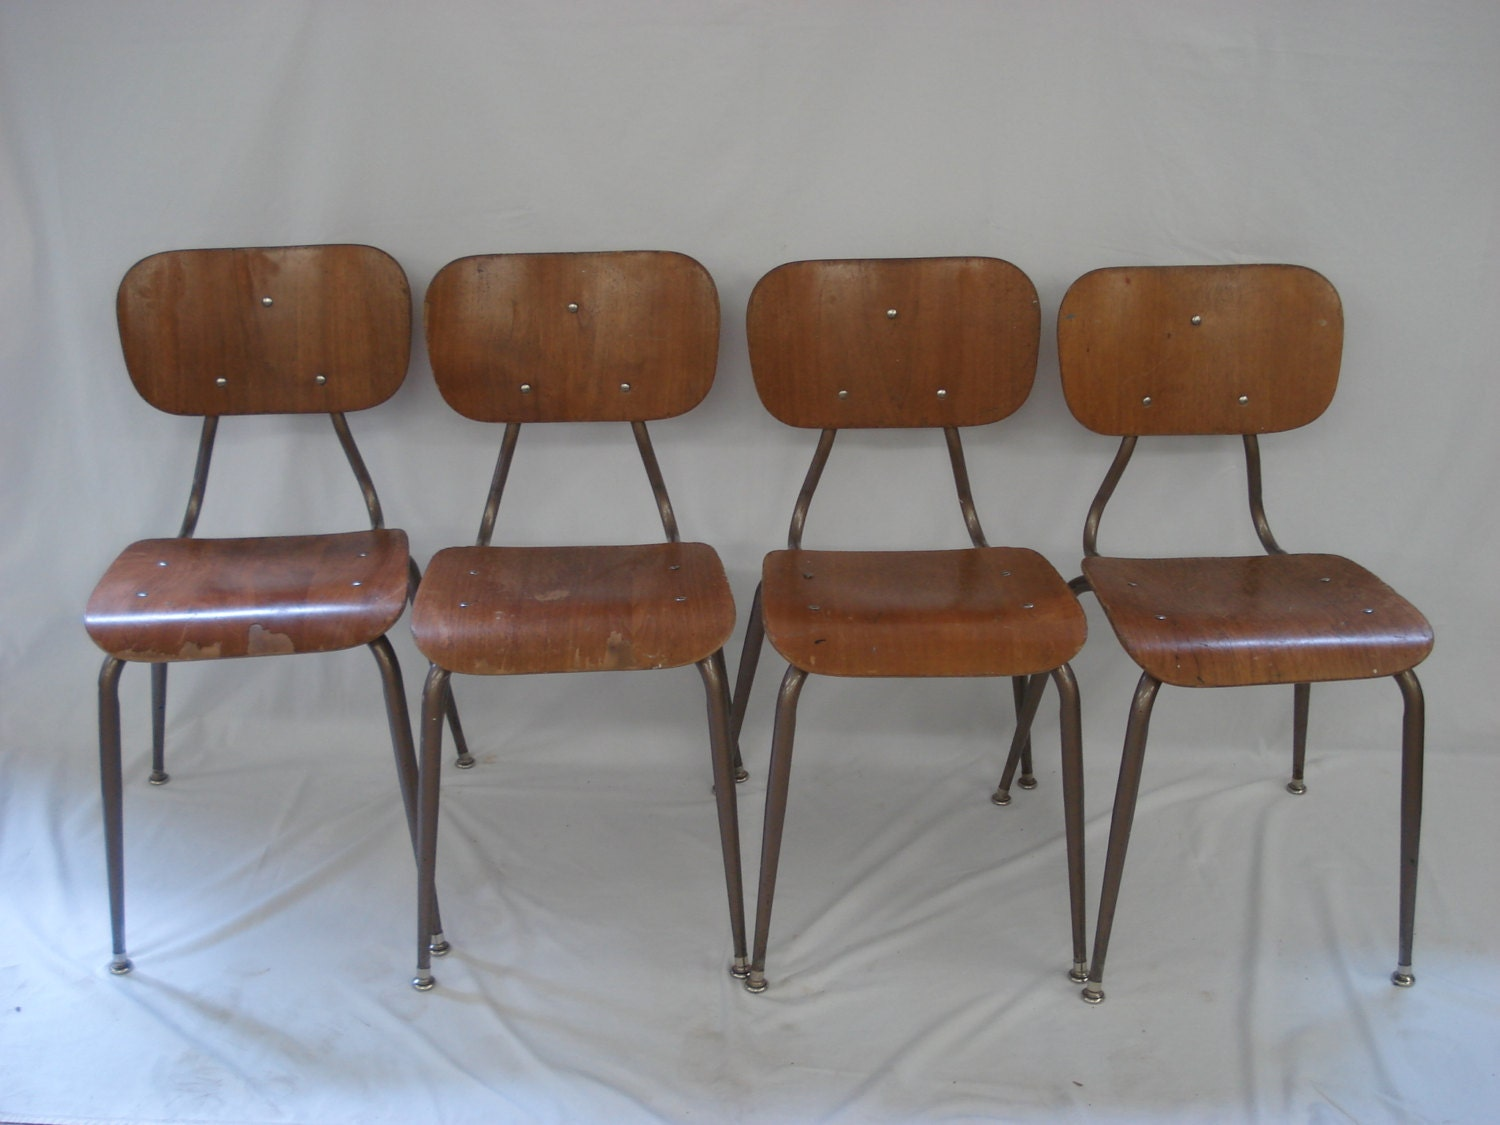 Retro Wood Kitchen School Dining Chairs Mid Century Modern